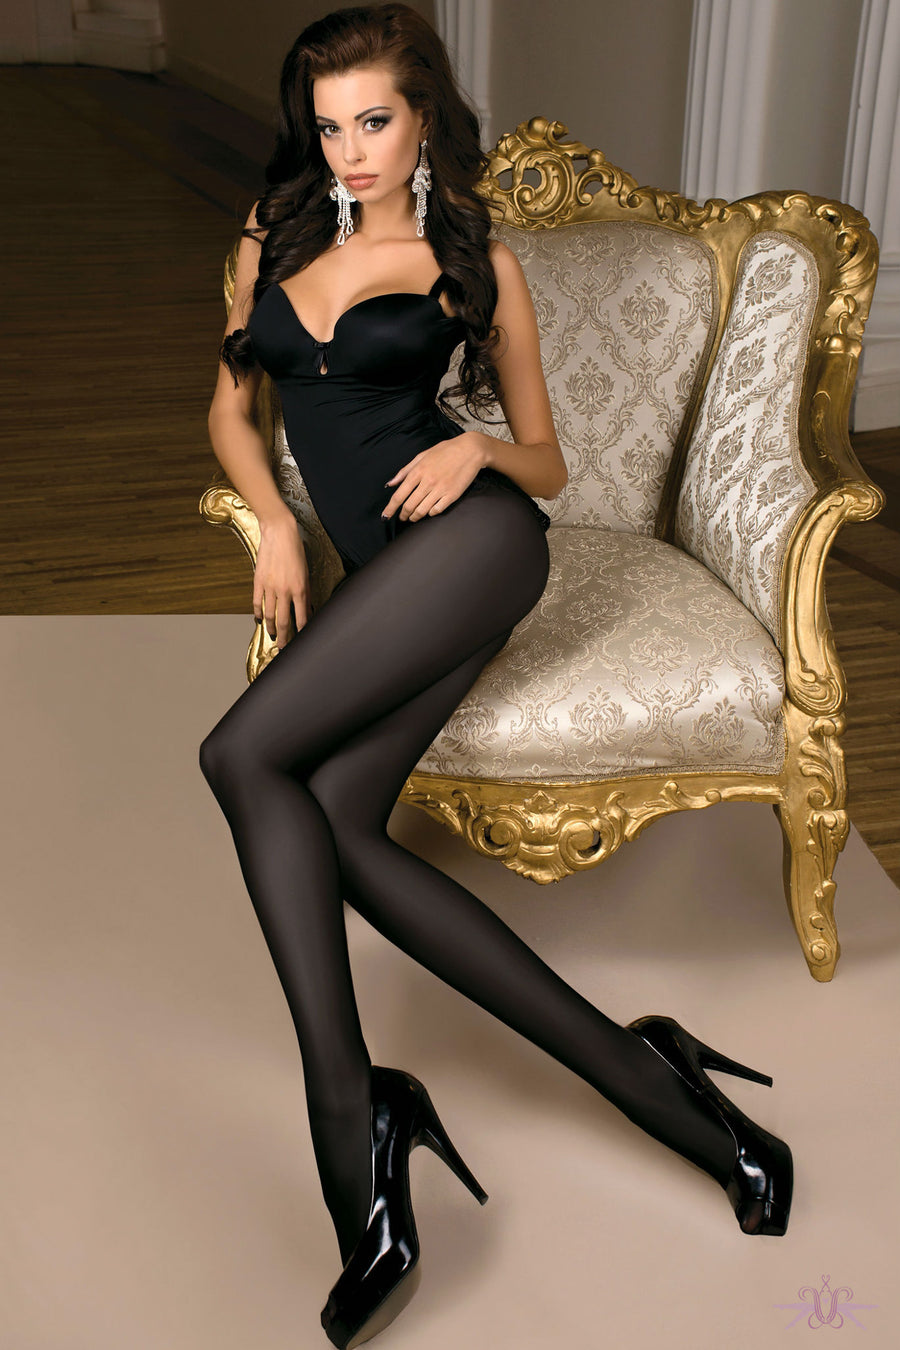 Ballerina Black Opaque Tights - Mayfair Stockings